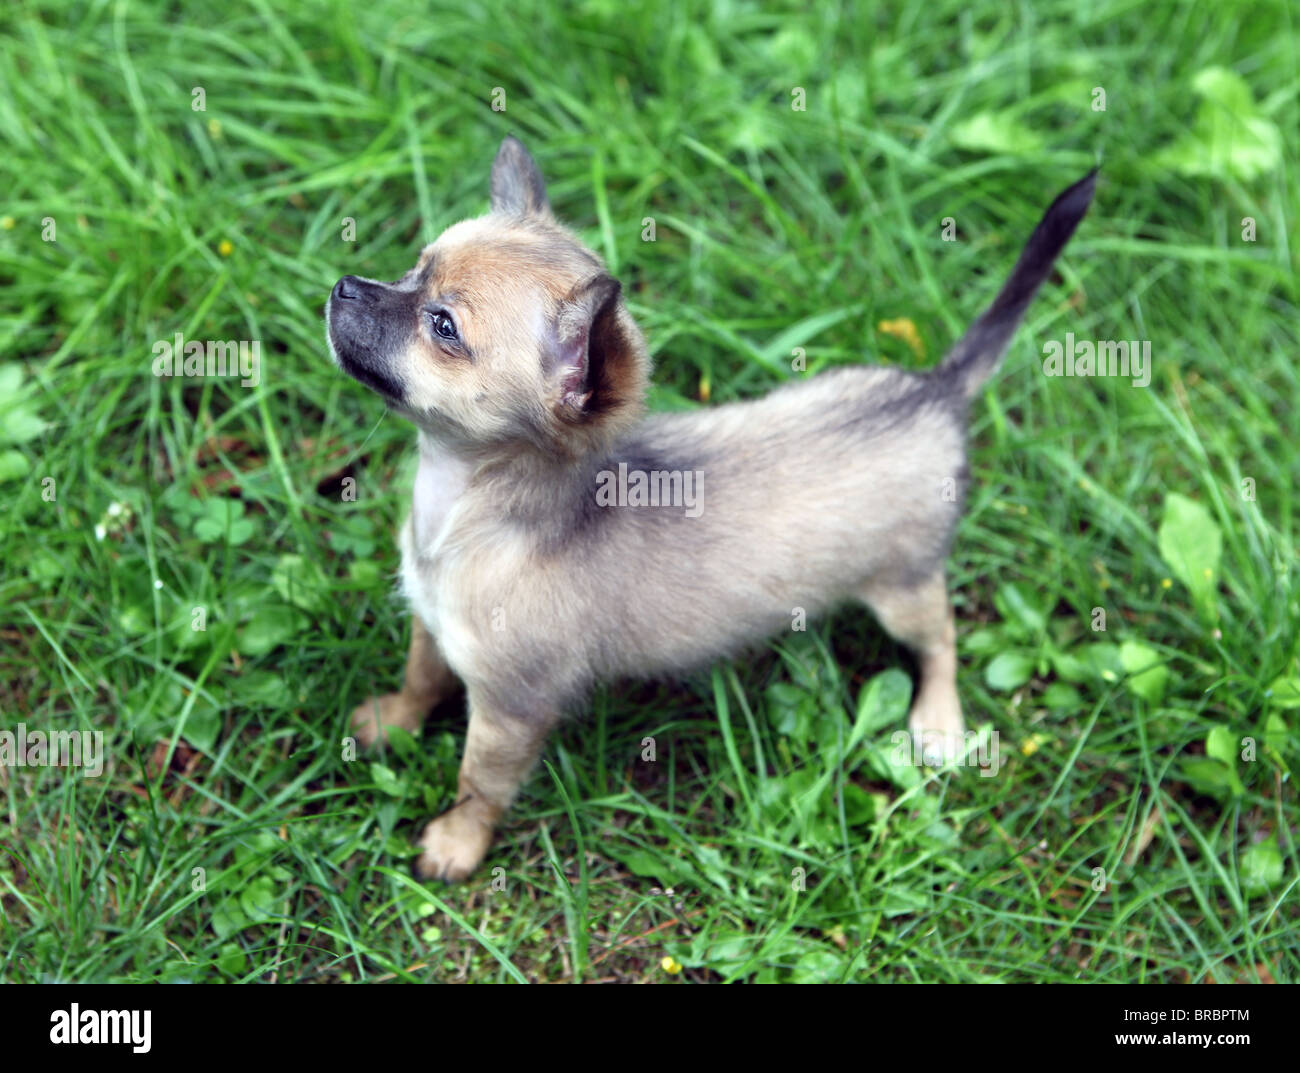 Eleven Weeks Old Longhair Blue And Grey Chihuahua Puppy Standing Stock Photo Alamy